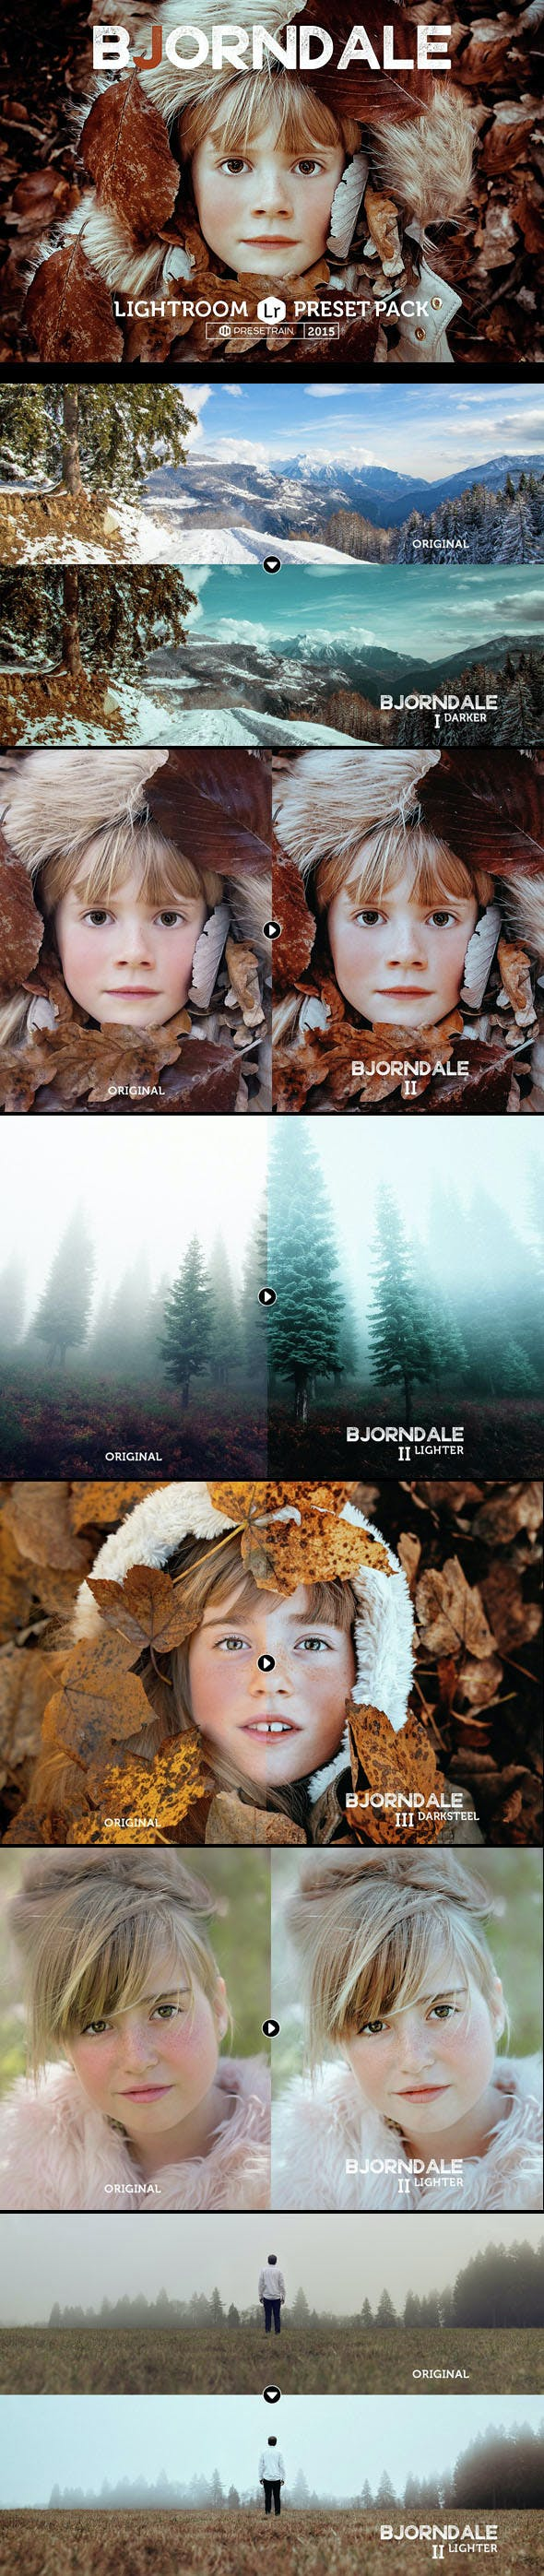 Bjorndale Lightroom Preset Pack - Landscape Lightroom Presets